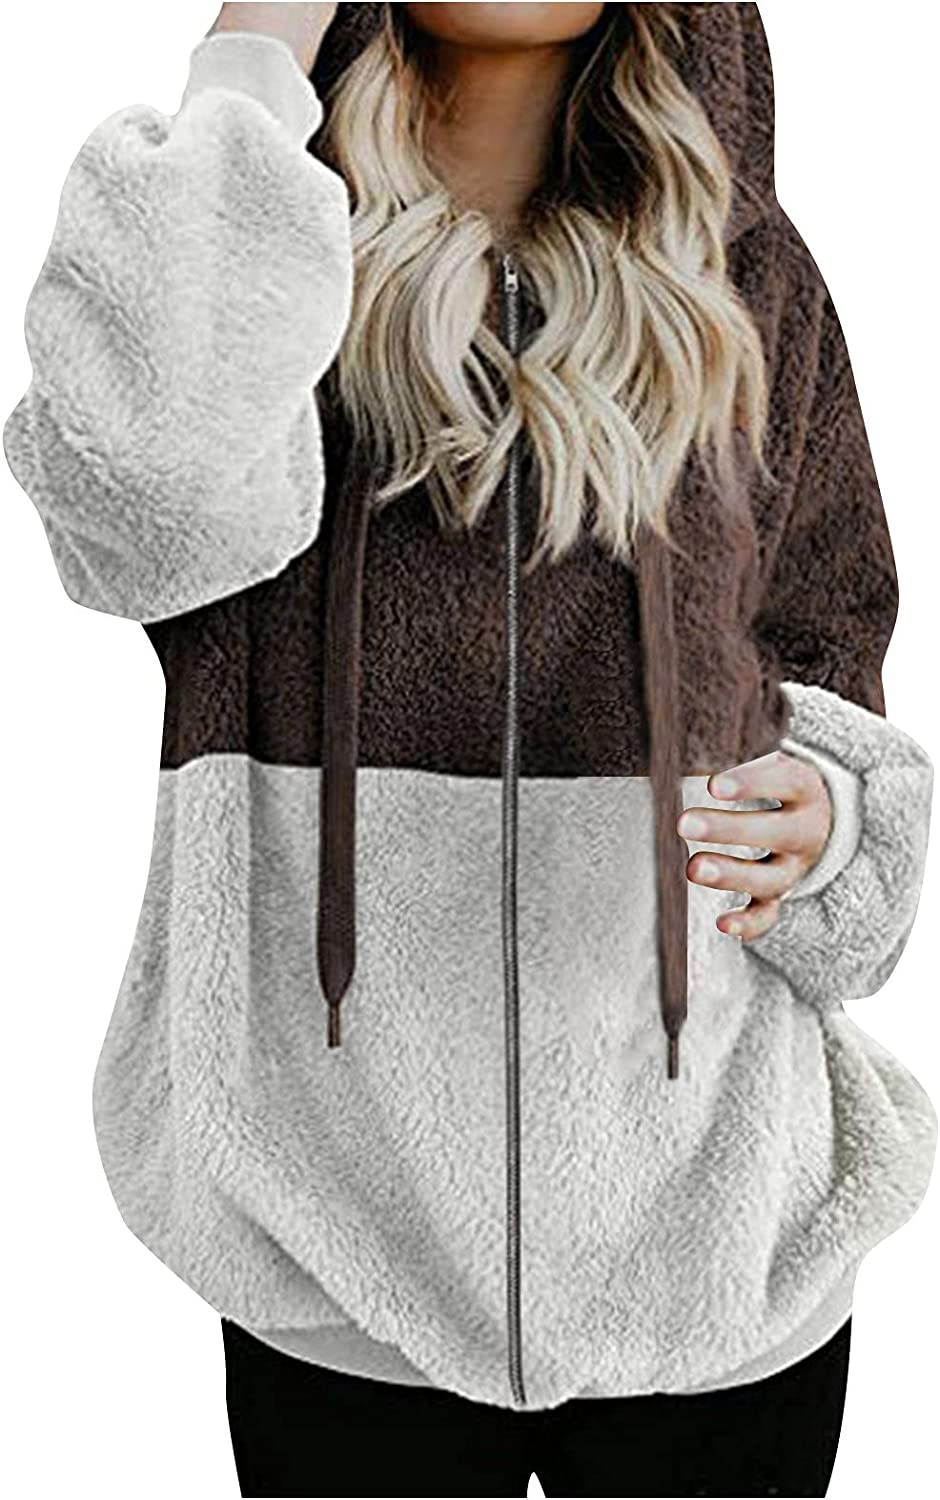 Bombasty Pullovers for Womens Button Down Hoodies Drawstring Color Block Hooded Pocket Casual Long Sleeve V Neck Sweatshirts